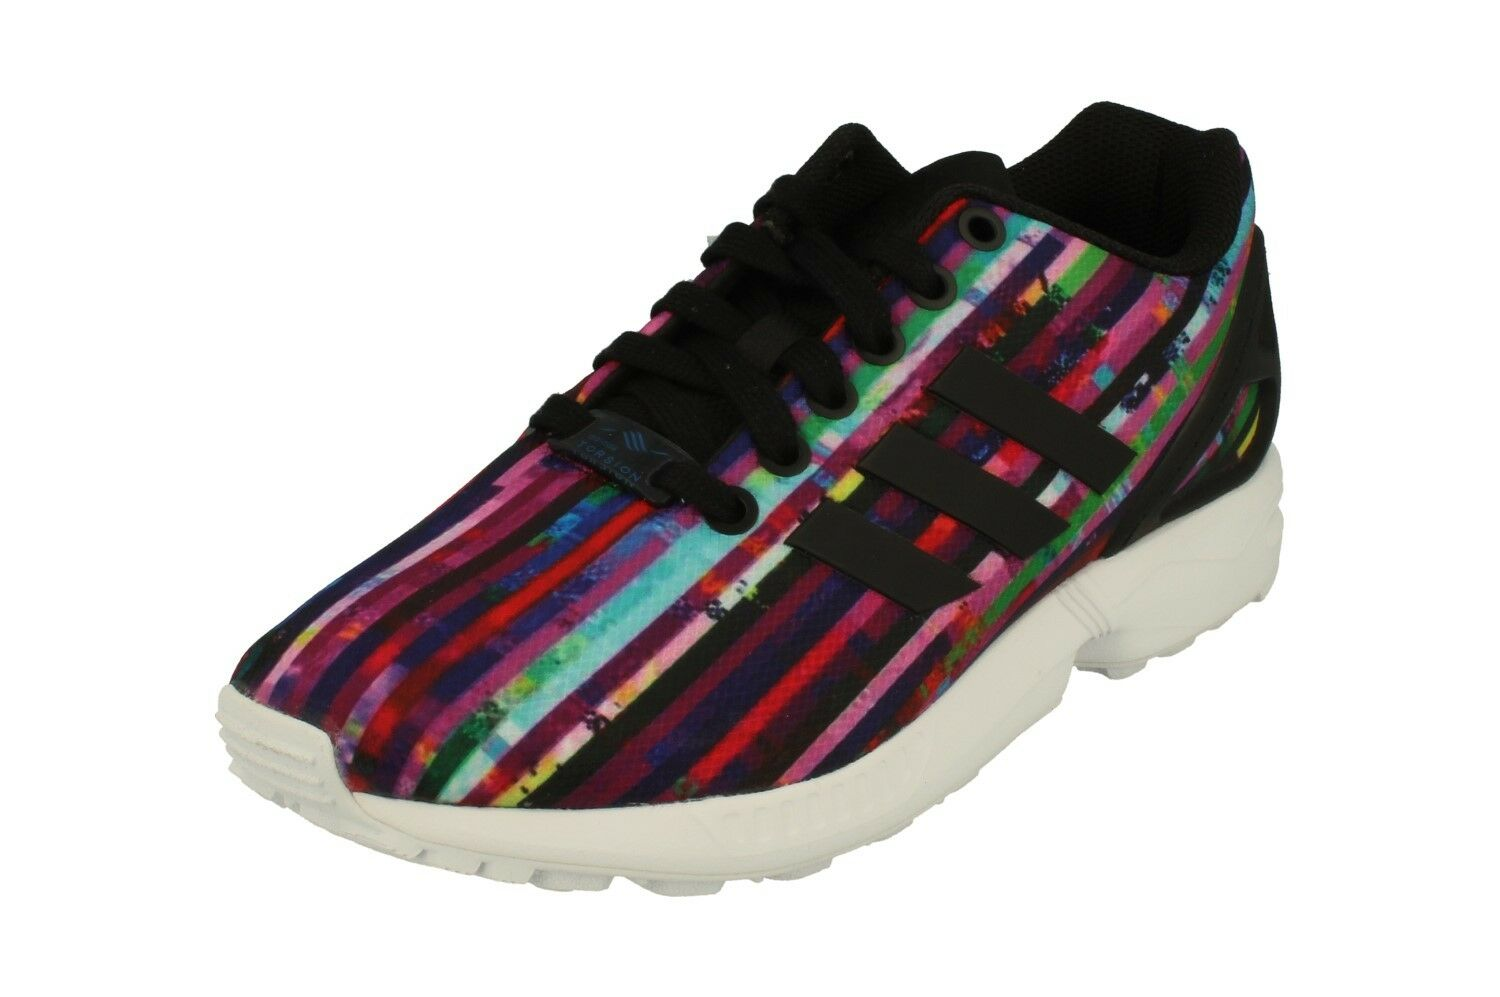 Adidas Originals Zx Flux Mens Running Trainers Sneakers S76504